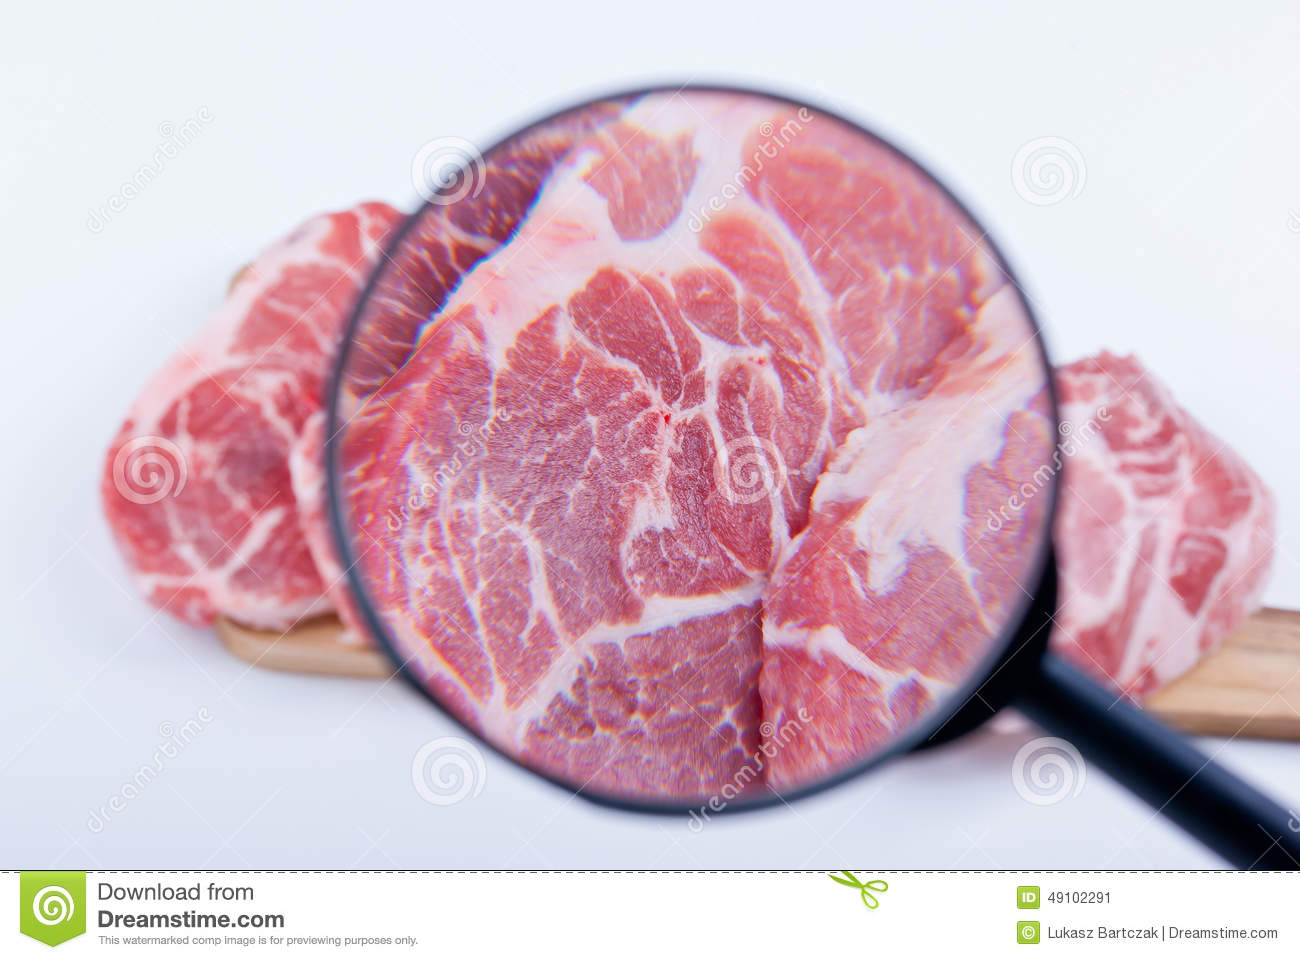 meat inspection Find great deals on ebay for meat inspection shop with confidence.